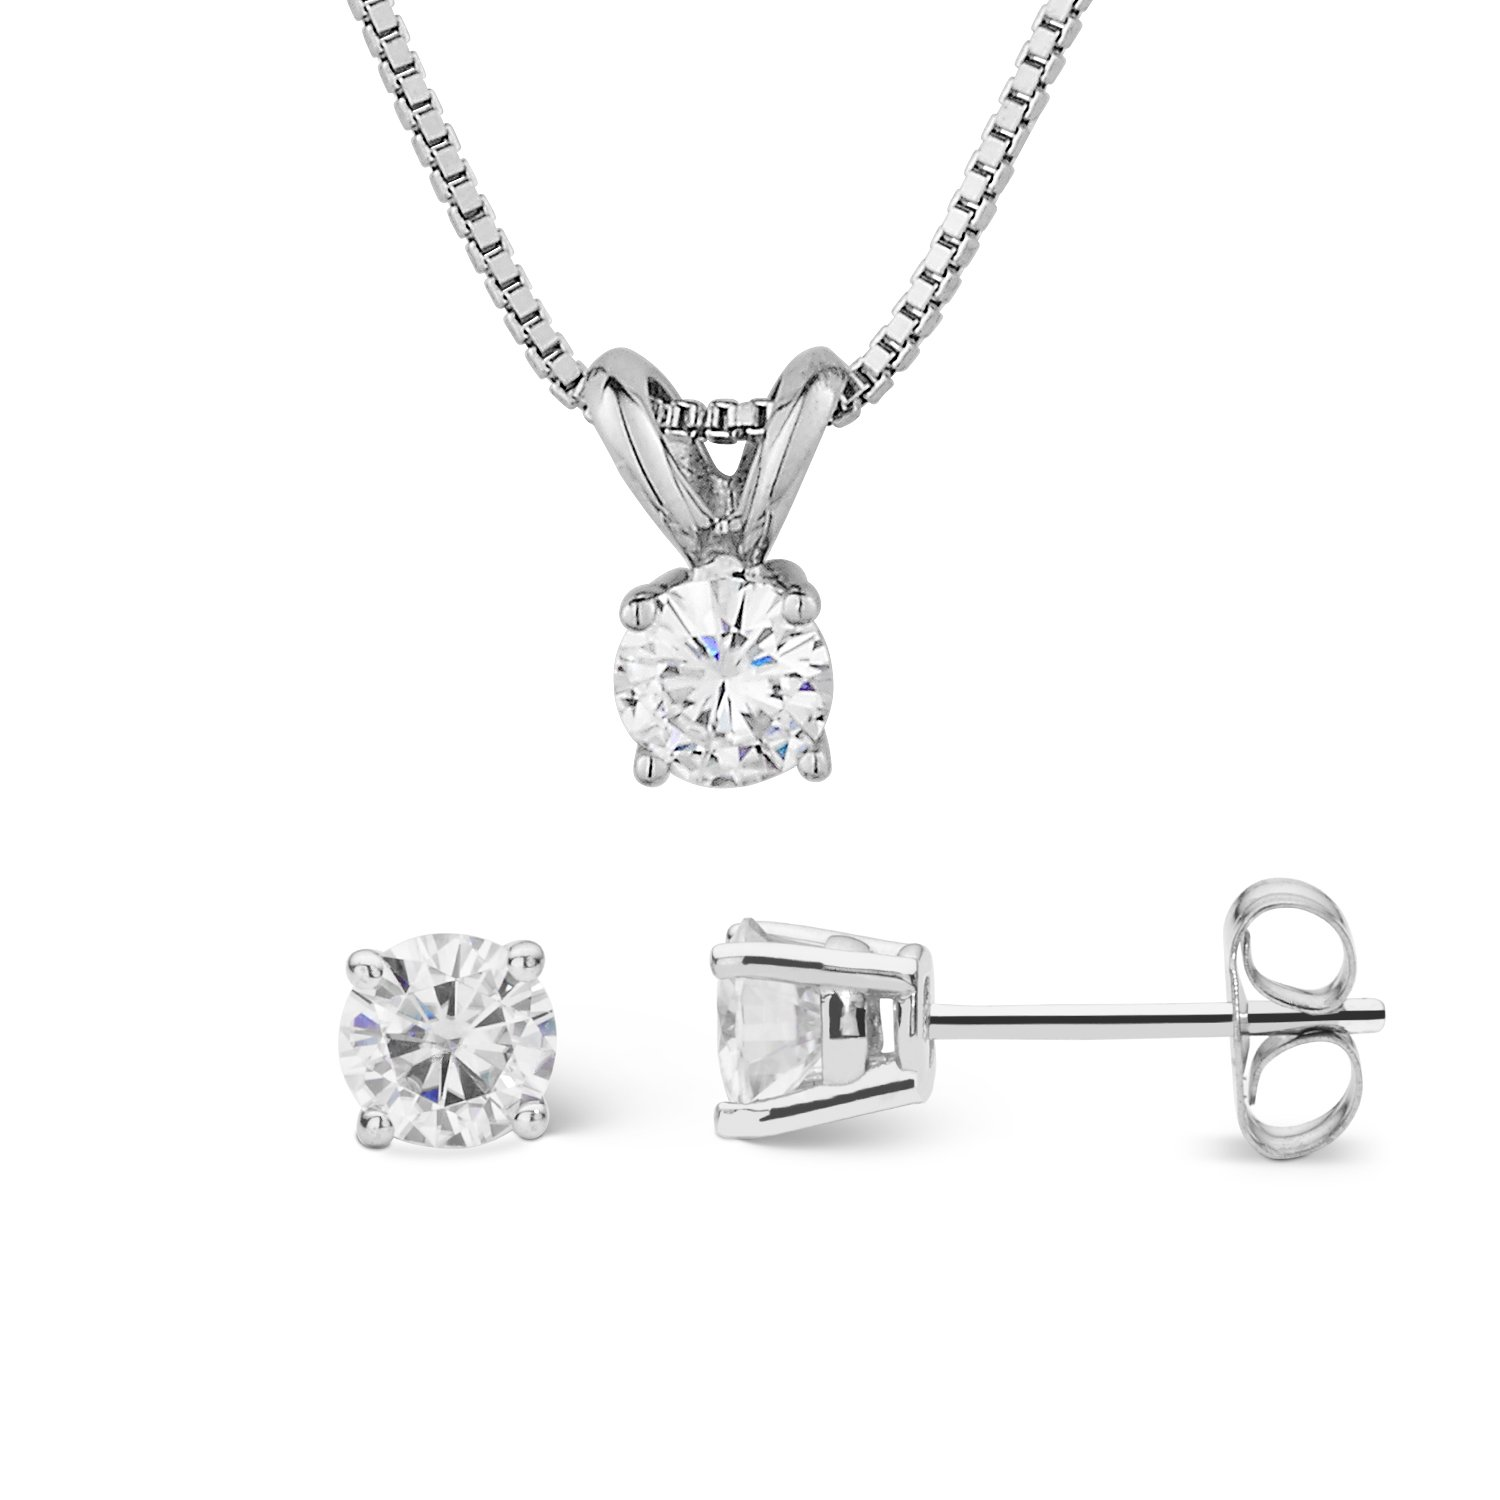 Forever Classic Round Cut 4.5mm Moissanite Earrings and Pendant Necklace Set By Charles & Colvard